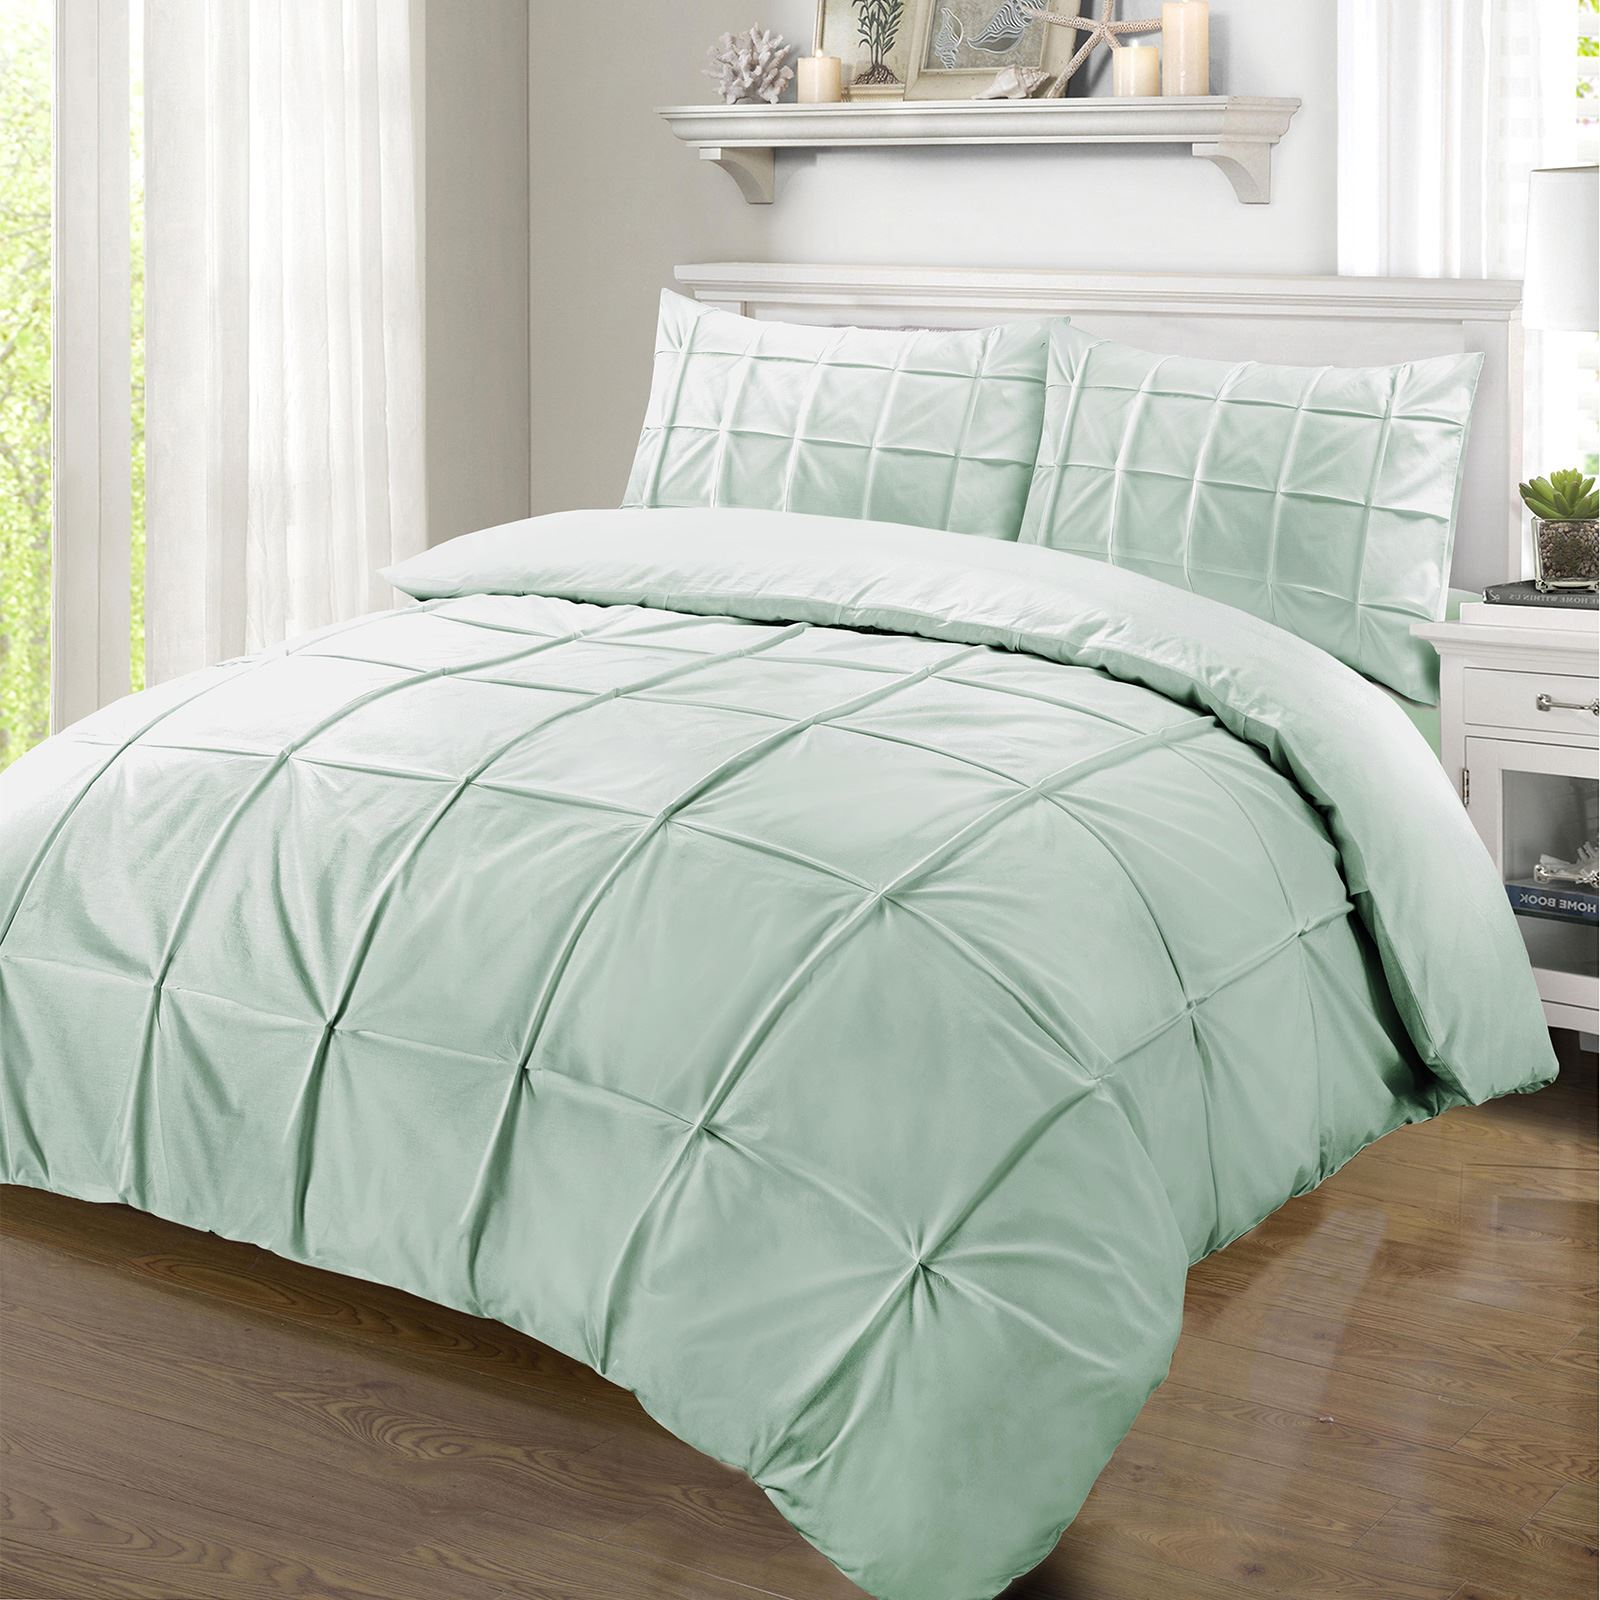 bedding with bedlinen cover the itm detailing bed duvet luxurious dramatic catherine in our glittering tones quilt pleated beautifully combines linen lustrous charlston sequin gold set designed lansfield